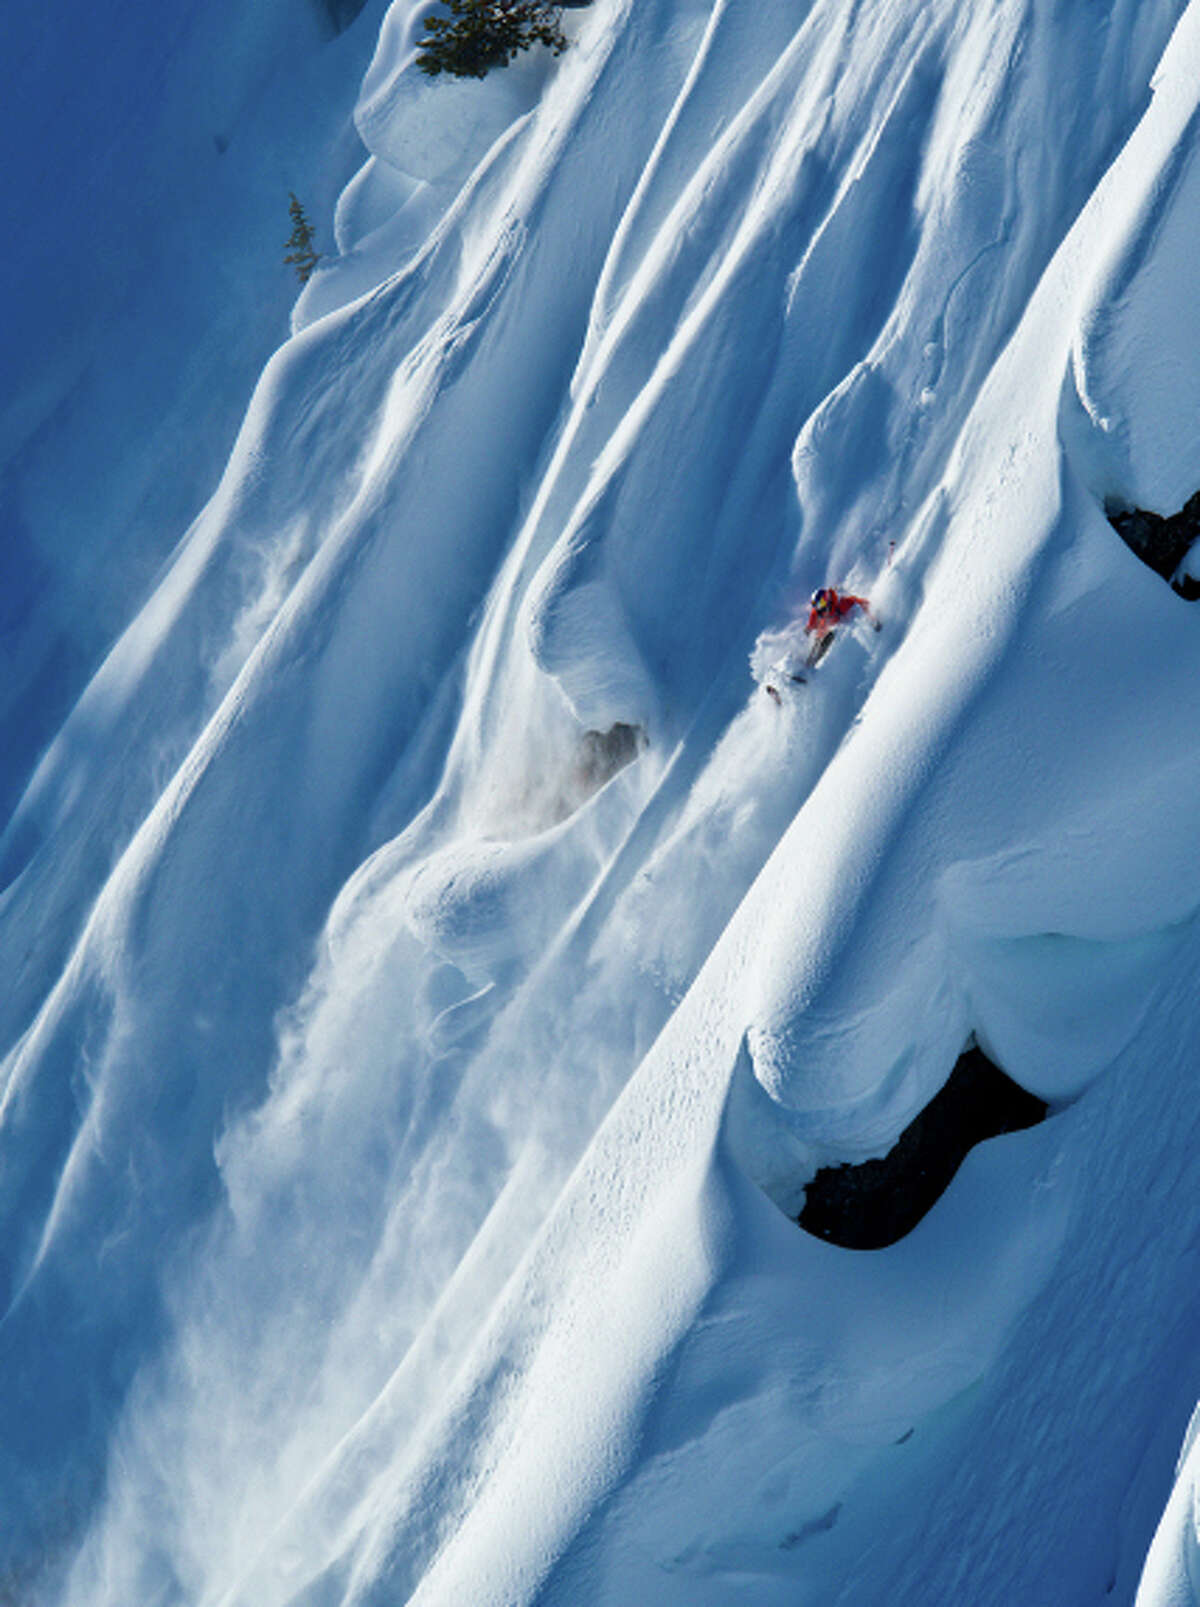 ìAttack of La Nina,î which features the talents of today's best skiers, will be screened at The Palace Danbury on Saturday, Dec. 3 at 8 p.m.